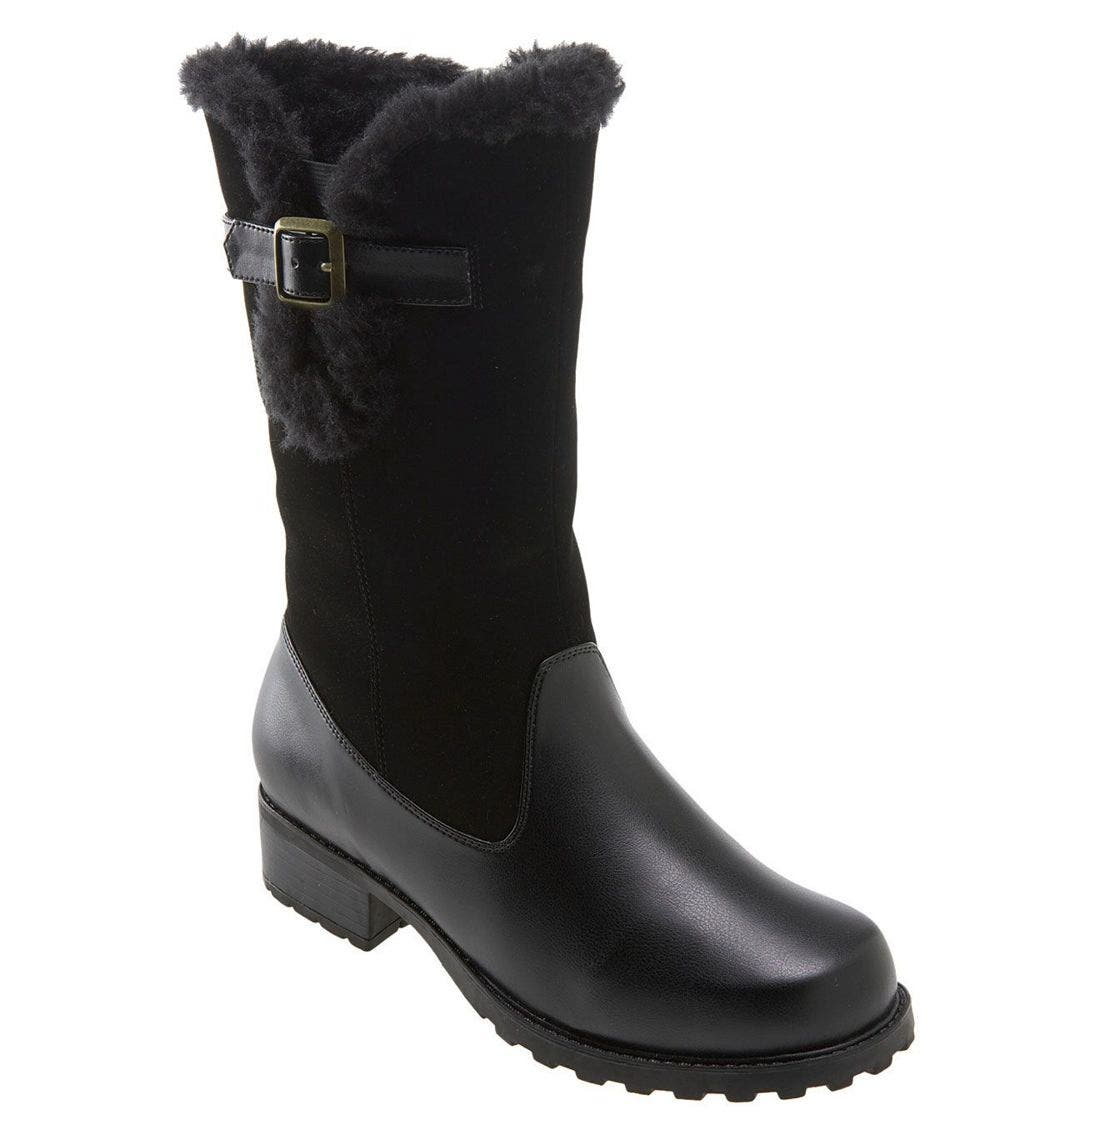 Alternate Image 1 Selected - Trotters 'Blizzard' Rain Boot